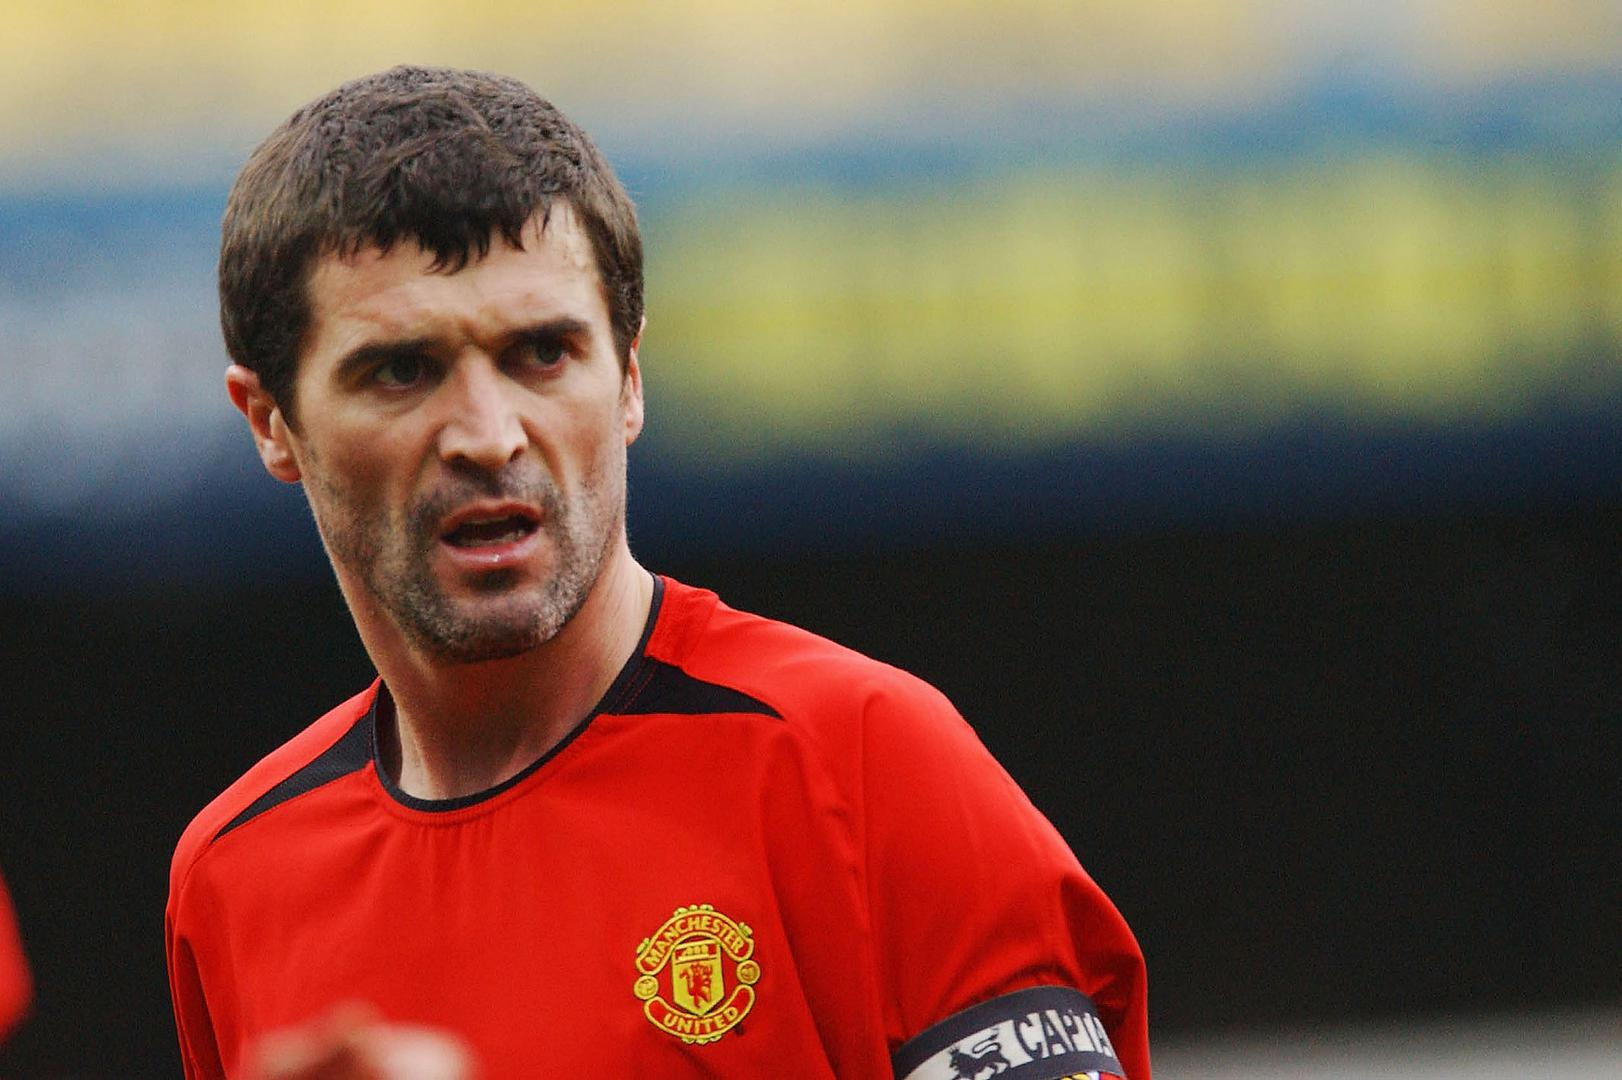 Roy Keane playing for Manchester United.